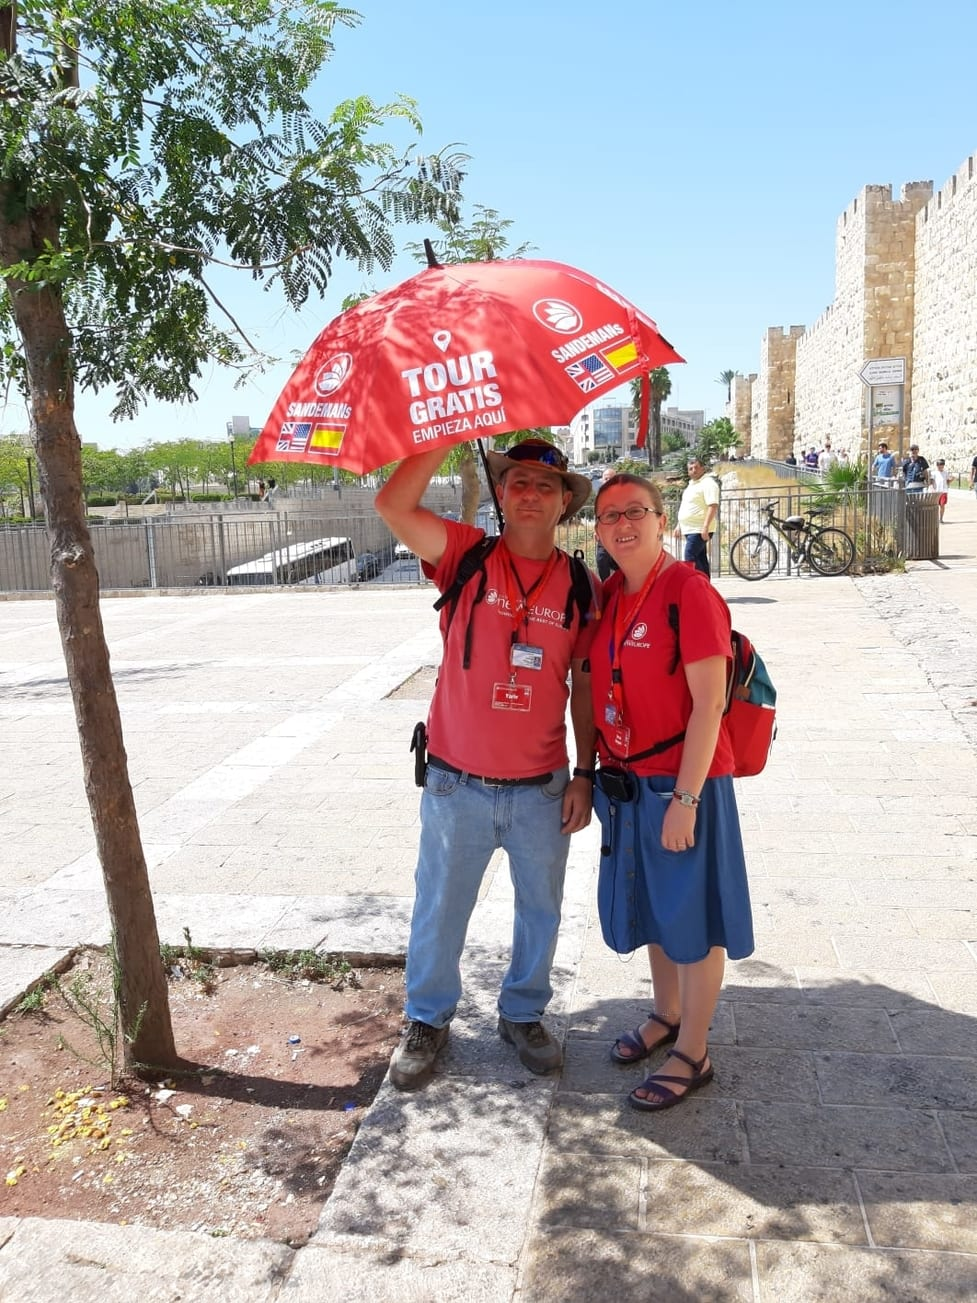 Sandemans Red Umbrella Jaffa Gate